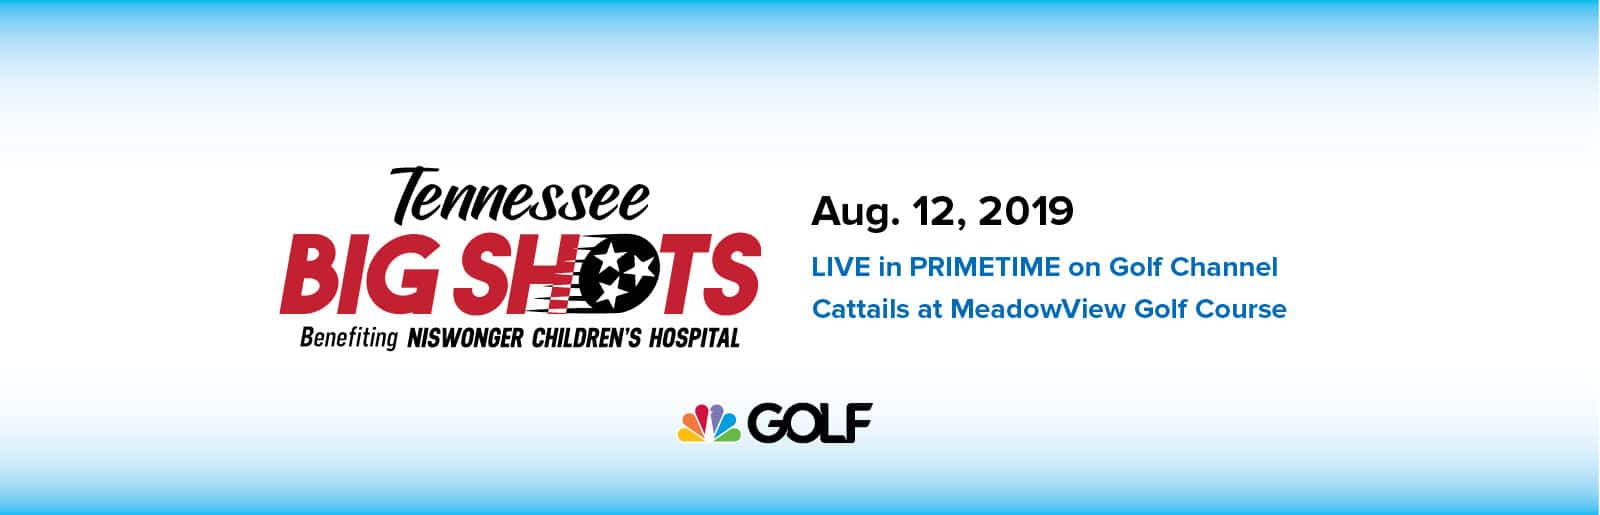 Tennessee Big Shots benefiting Niswonger Children's Hospital, August 12, 2019, at the Cattails at MeadowView Golf Course and live on Golf Channel